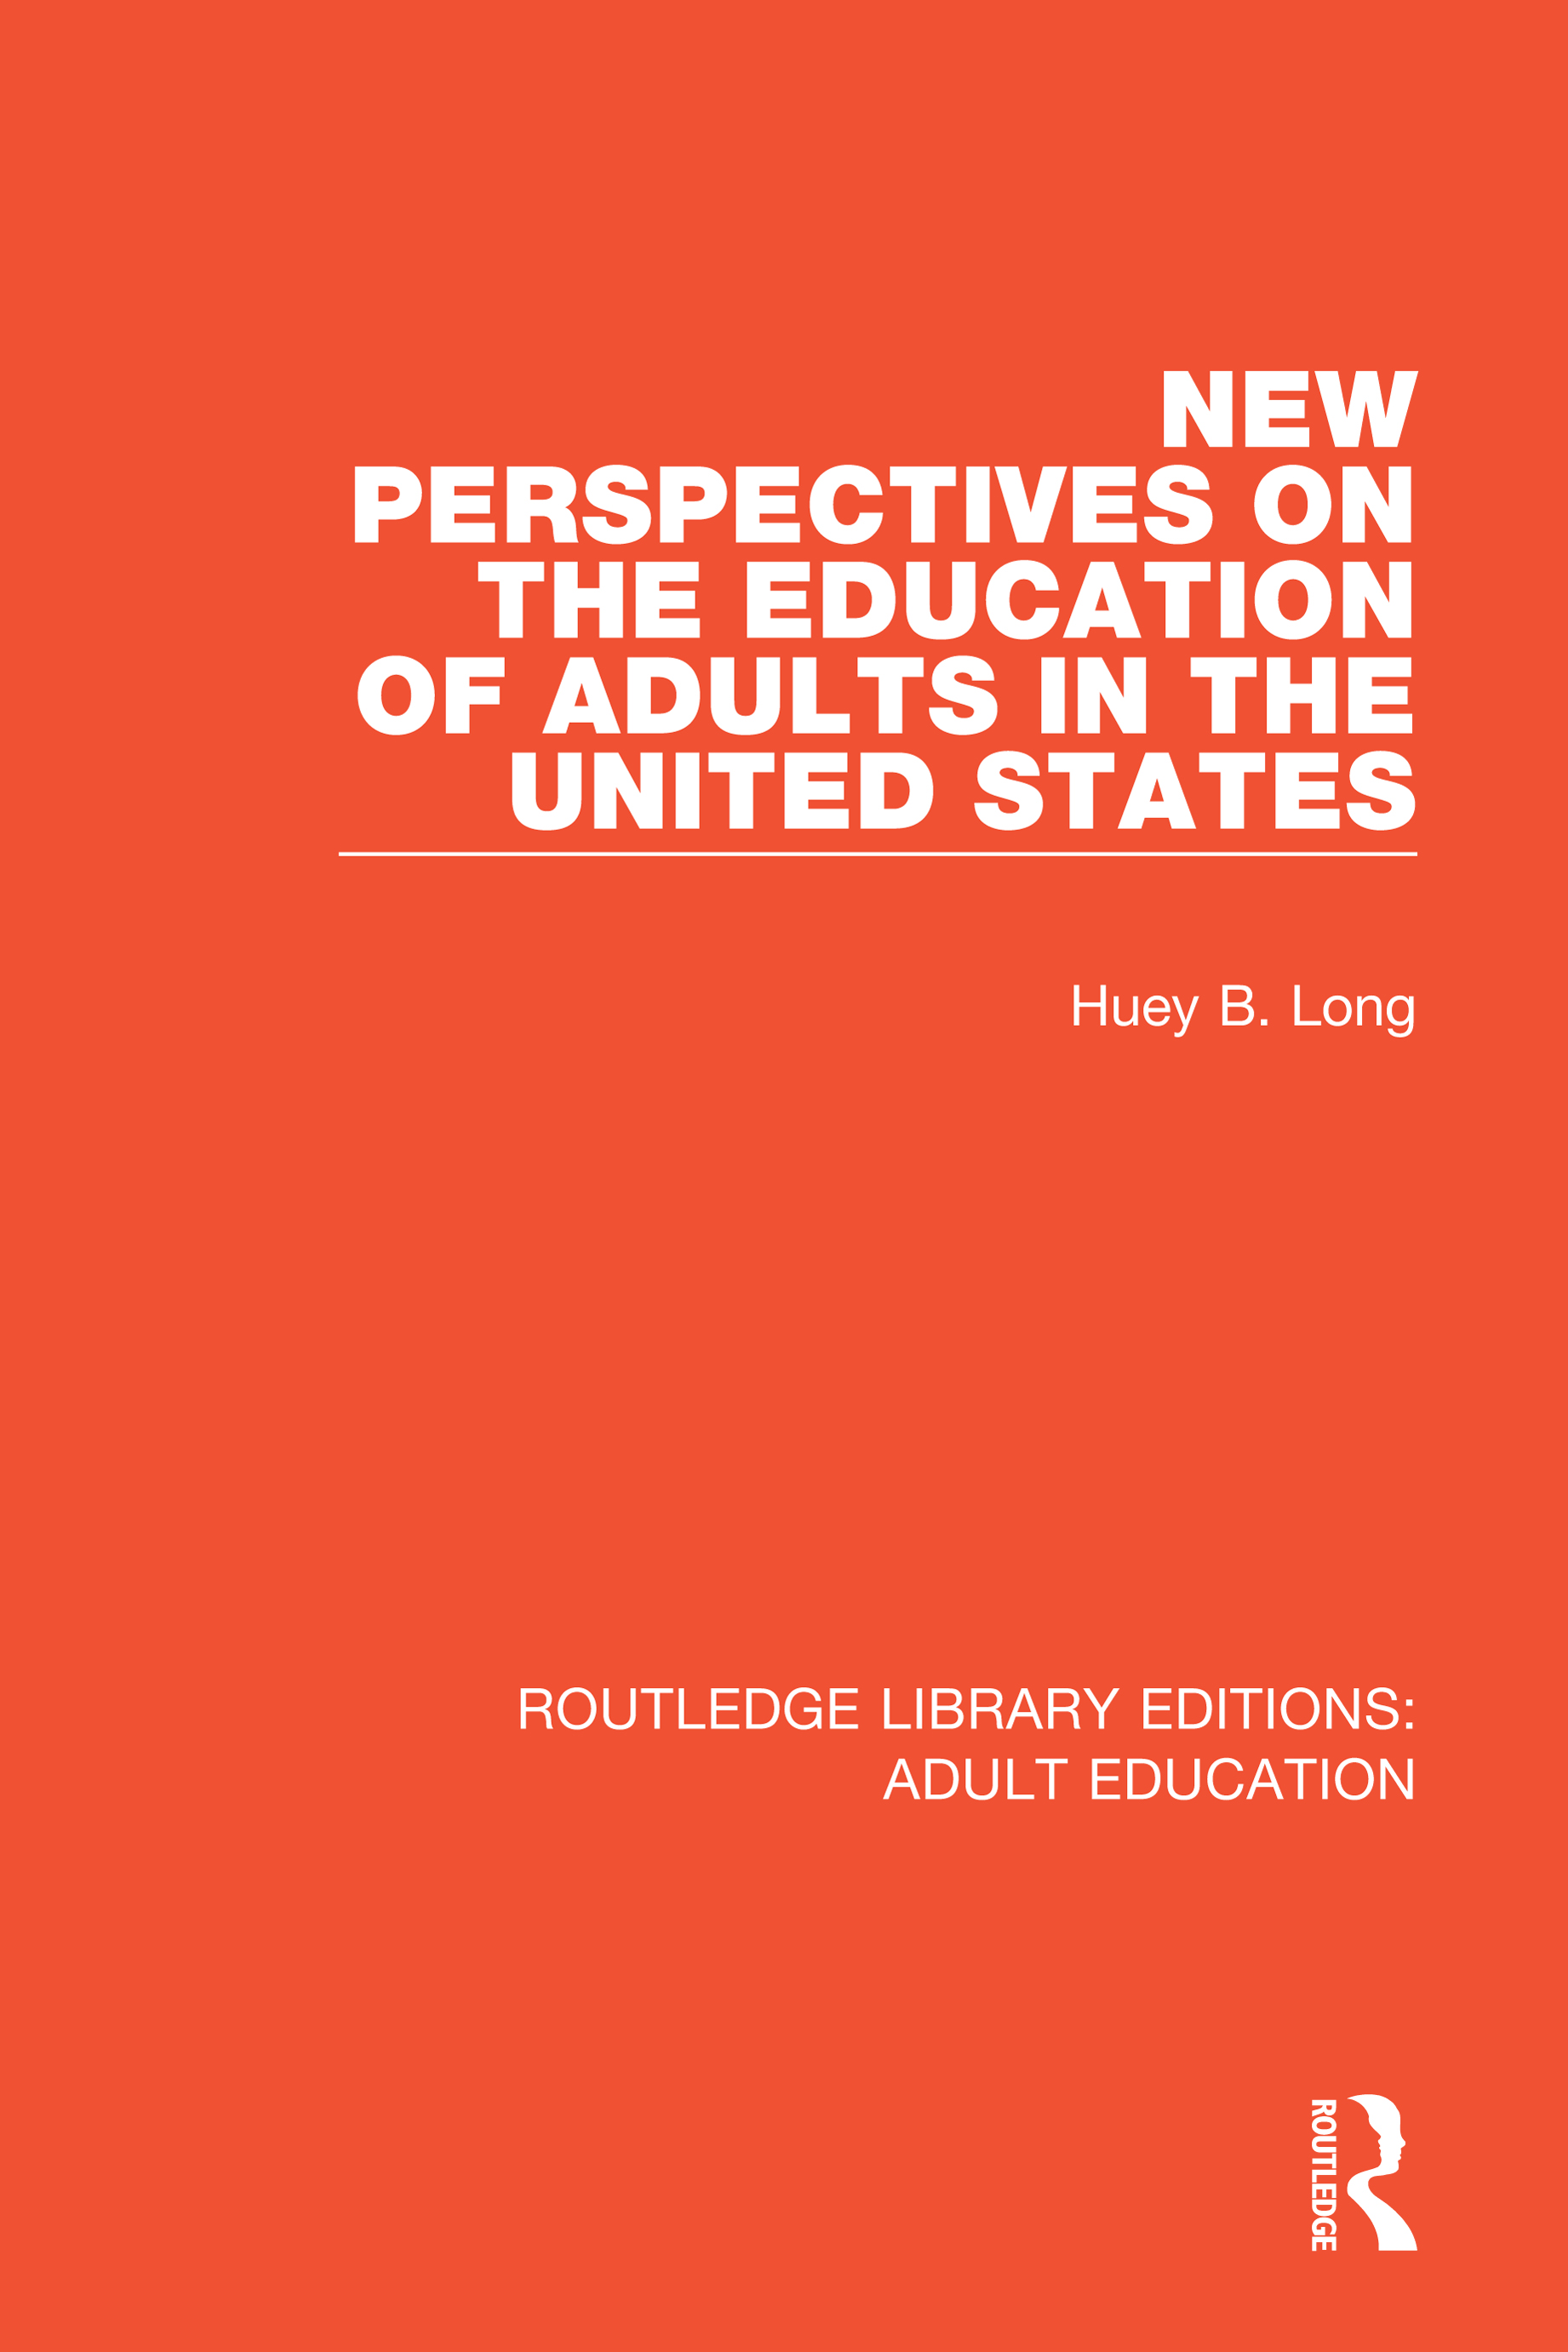 New Perspectives on the Education of Adults in the United States